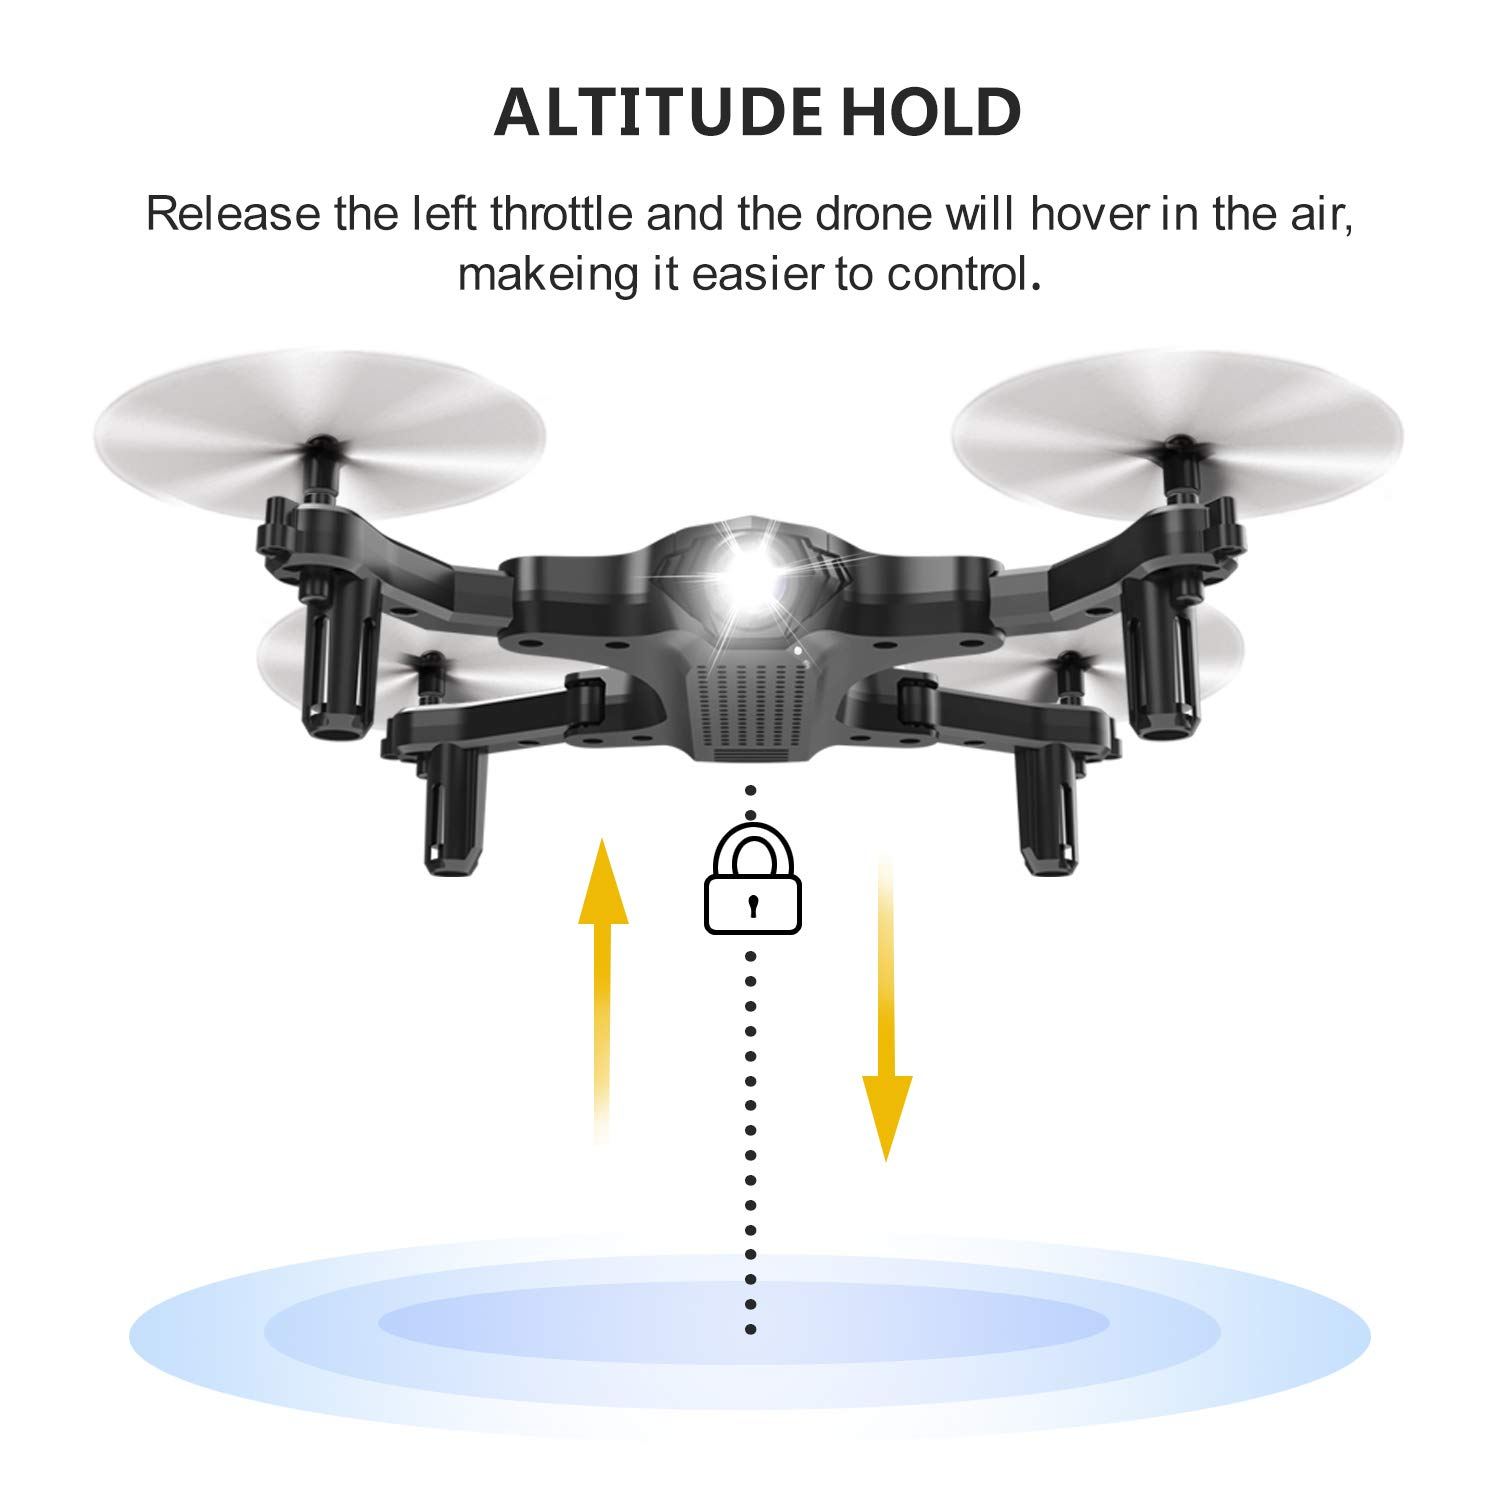 ScharkSpark Drone for Beginners, Portable RC Quadcopter with Foldable Arms Indoor/Outdoor Play, 6-Axis Gyro One-Key Return/Headless Mode/Altitude Hold/3D Flips, Warrior II by ScharkSpark (Image #6)